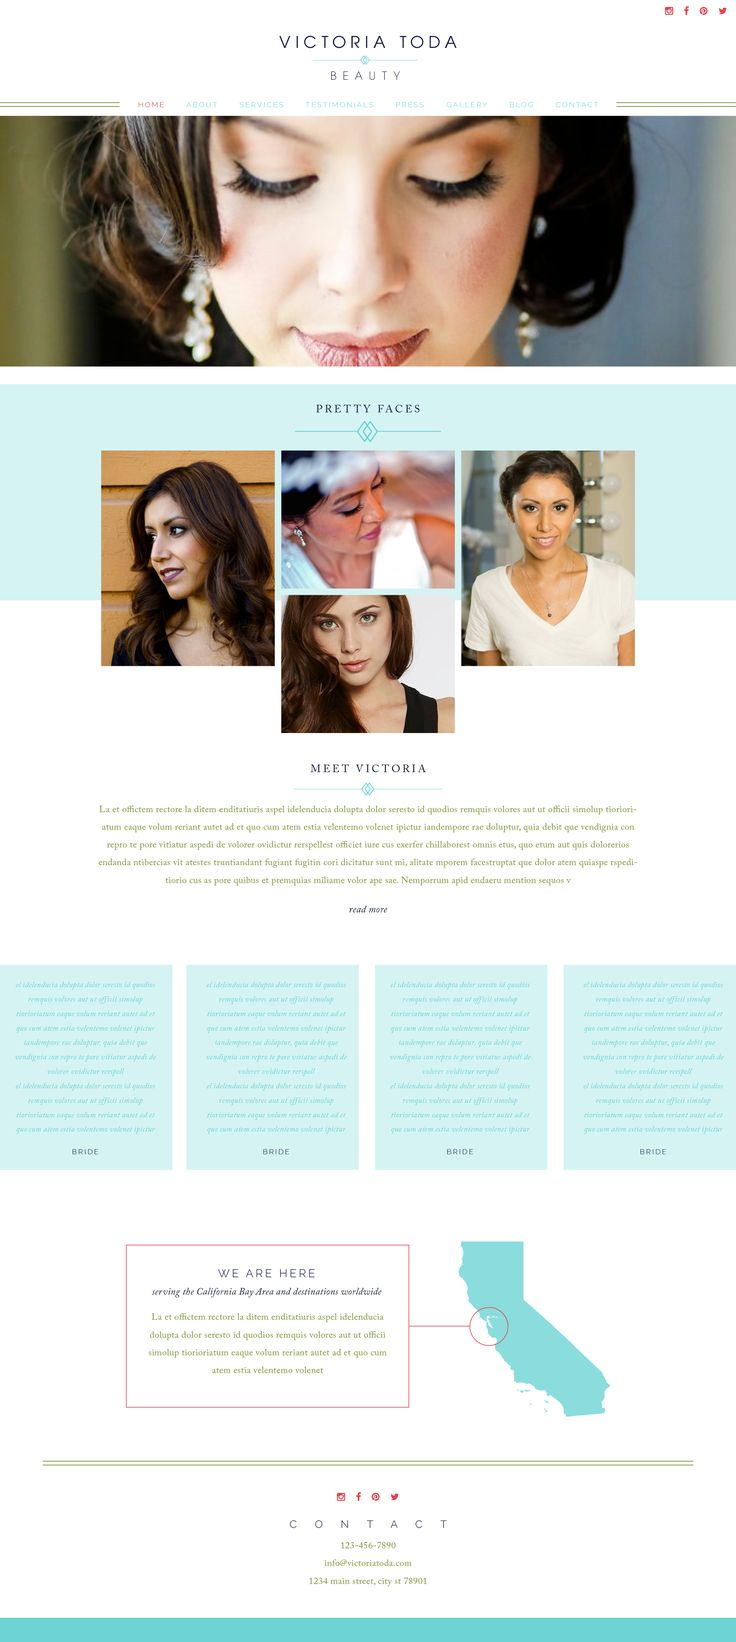 The 25+ best Makeup artist website ideas on Pinterest | Makeup ...